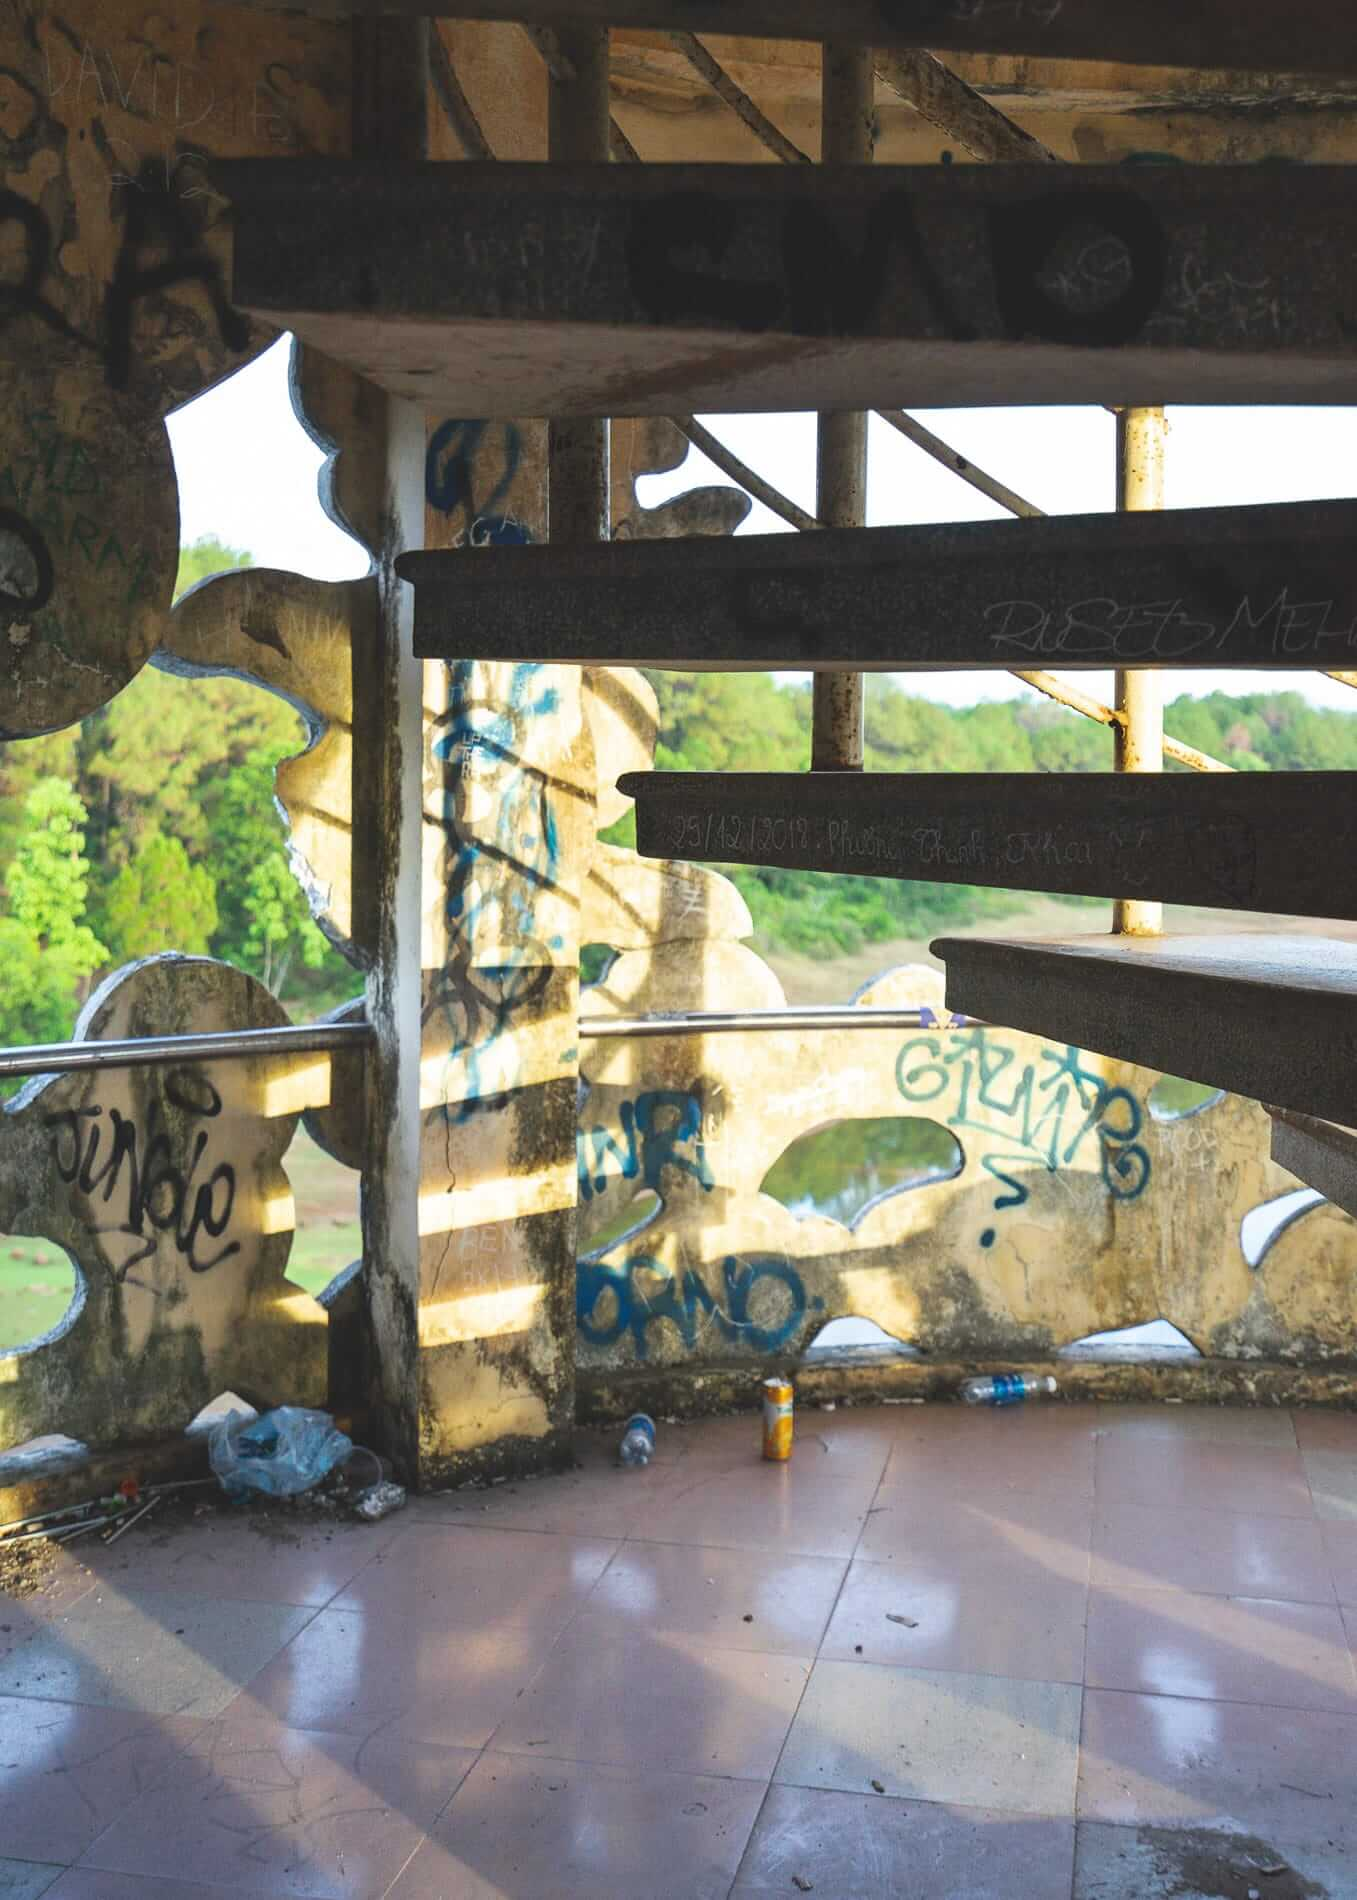 Stairs - Hues Abandoned Water Park